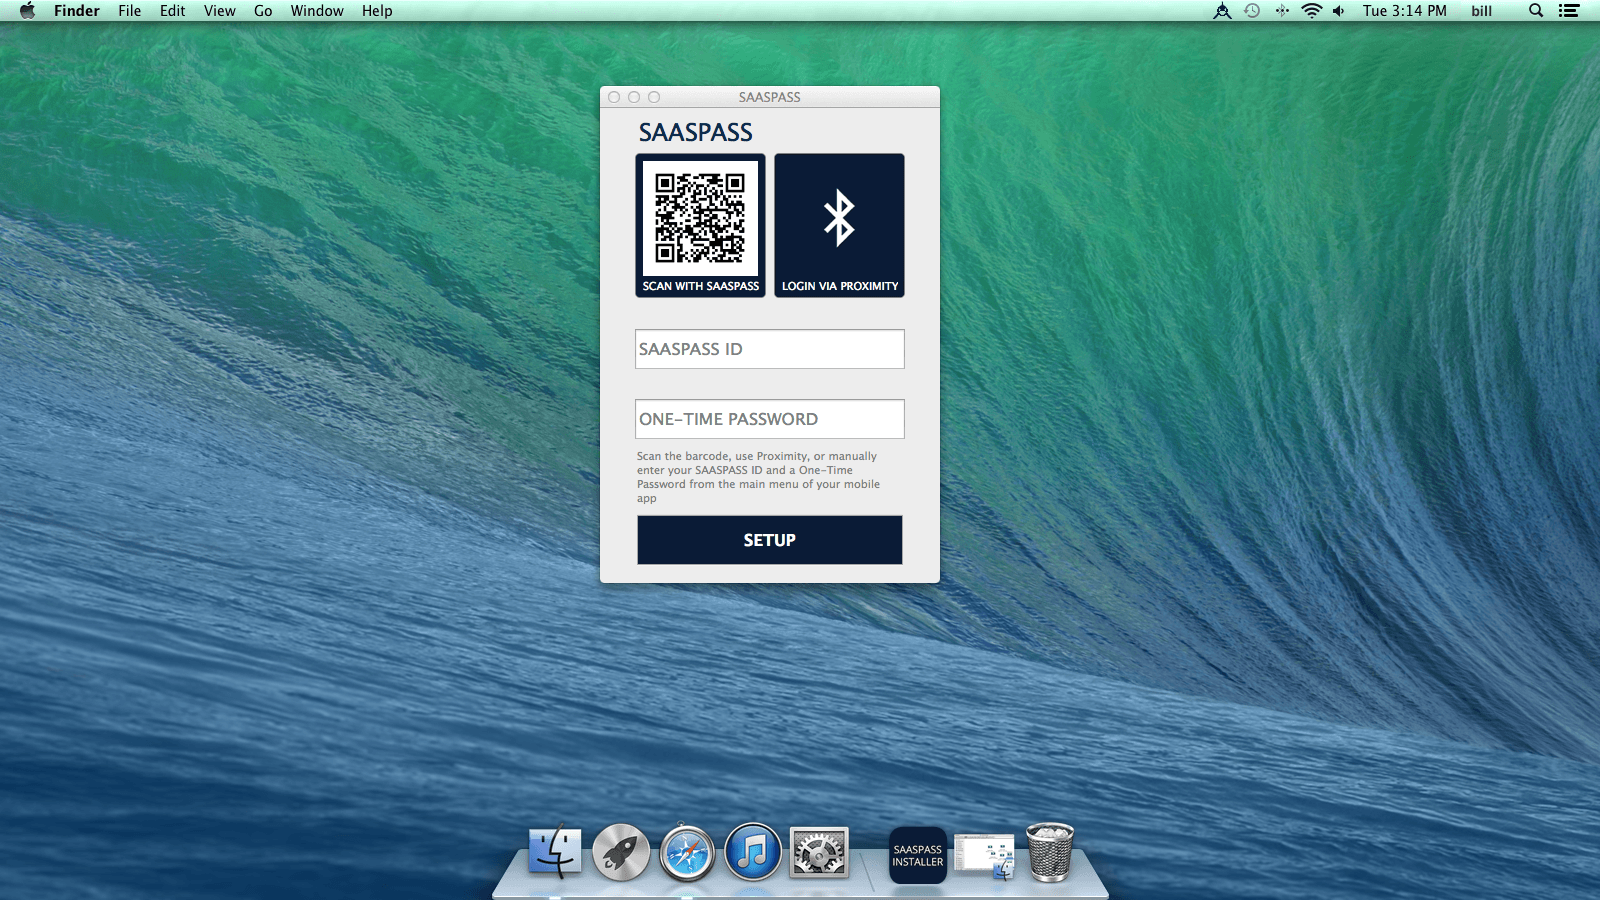 Install desktop and SSO application 2FA for Apple Mac OS X<